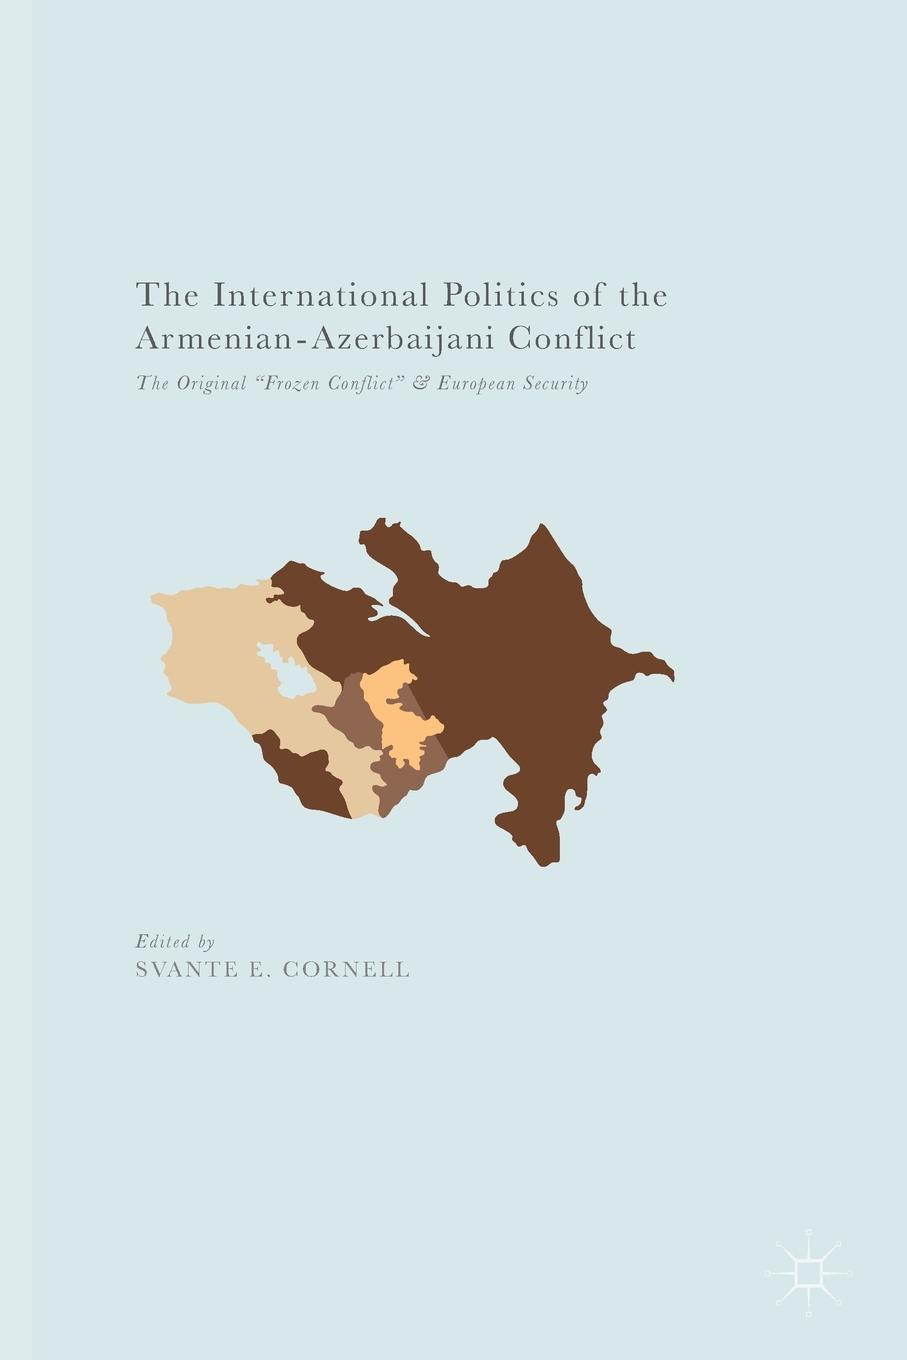 The International Politics of the Armenian-Azerbaijani Conflict. The Original Frozen Conflict and European Security john brademas the politics of education conflict and consensus on capitol hill